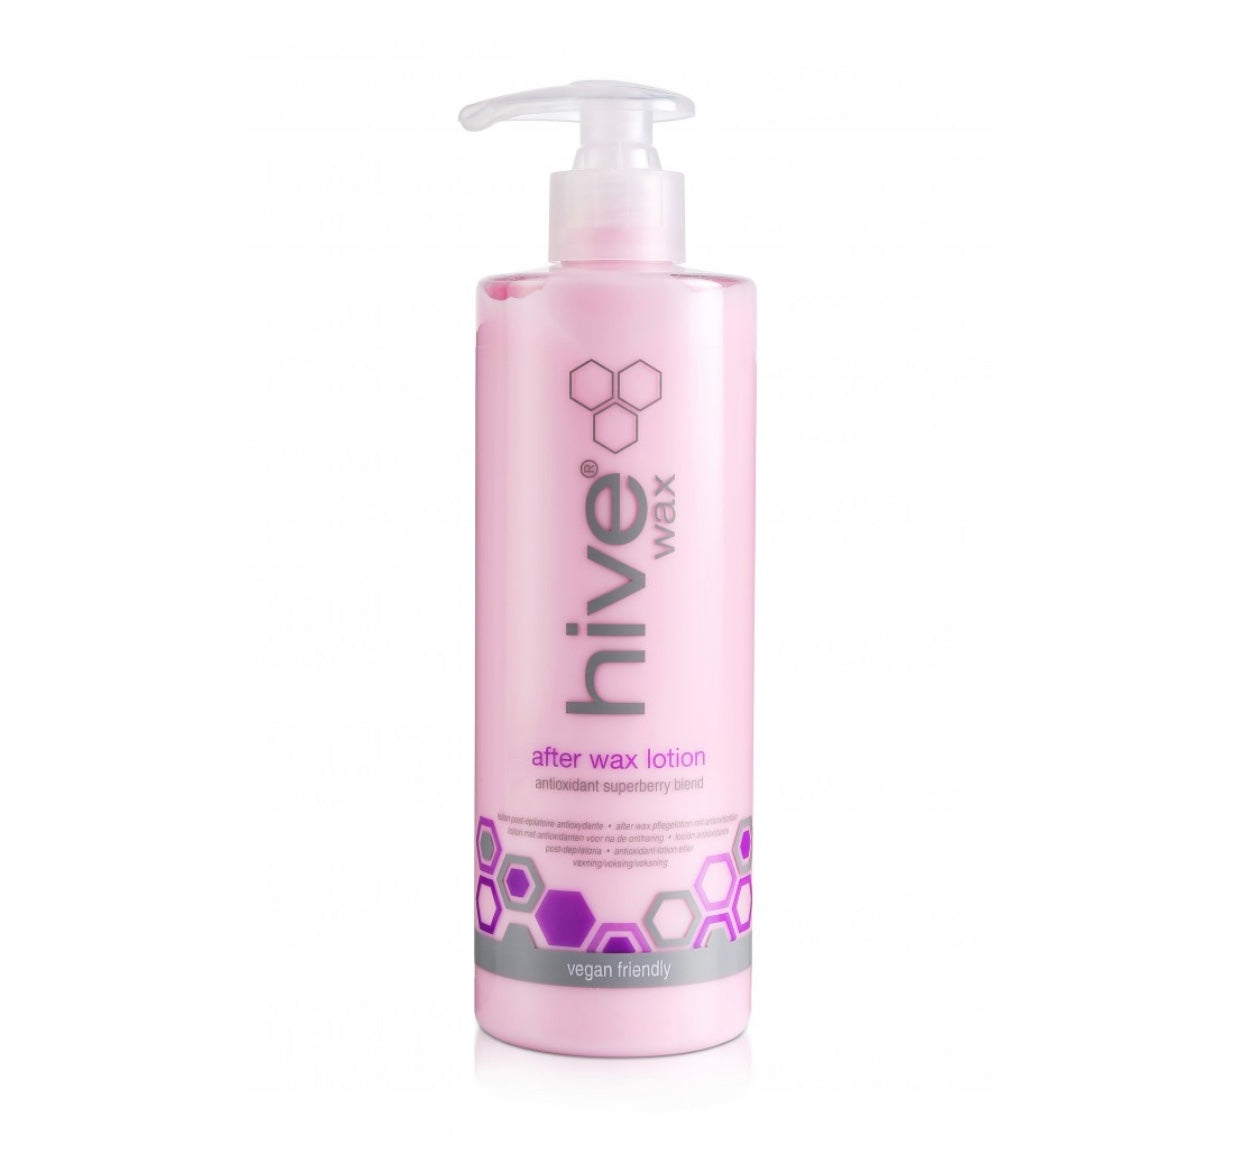 Superberry Blend after Wax Treatment Lotion